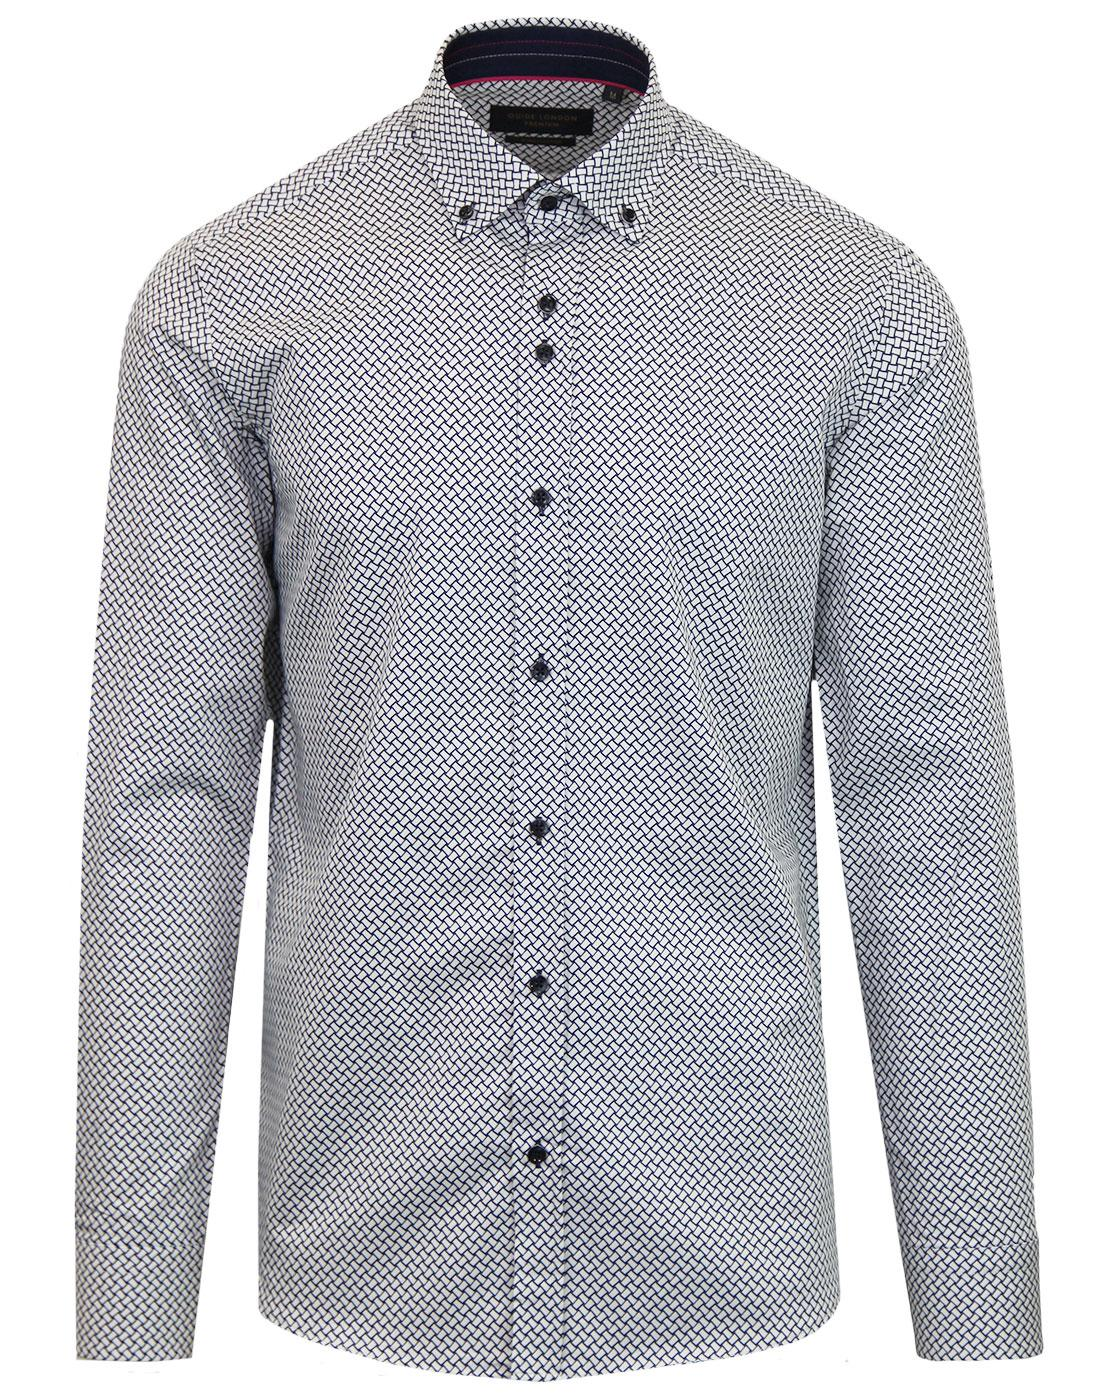 GUIDE LONDON Retro Mod Basket Weave Print Shirt